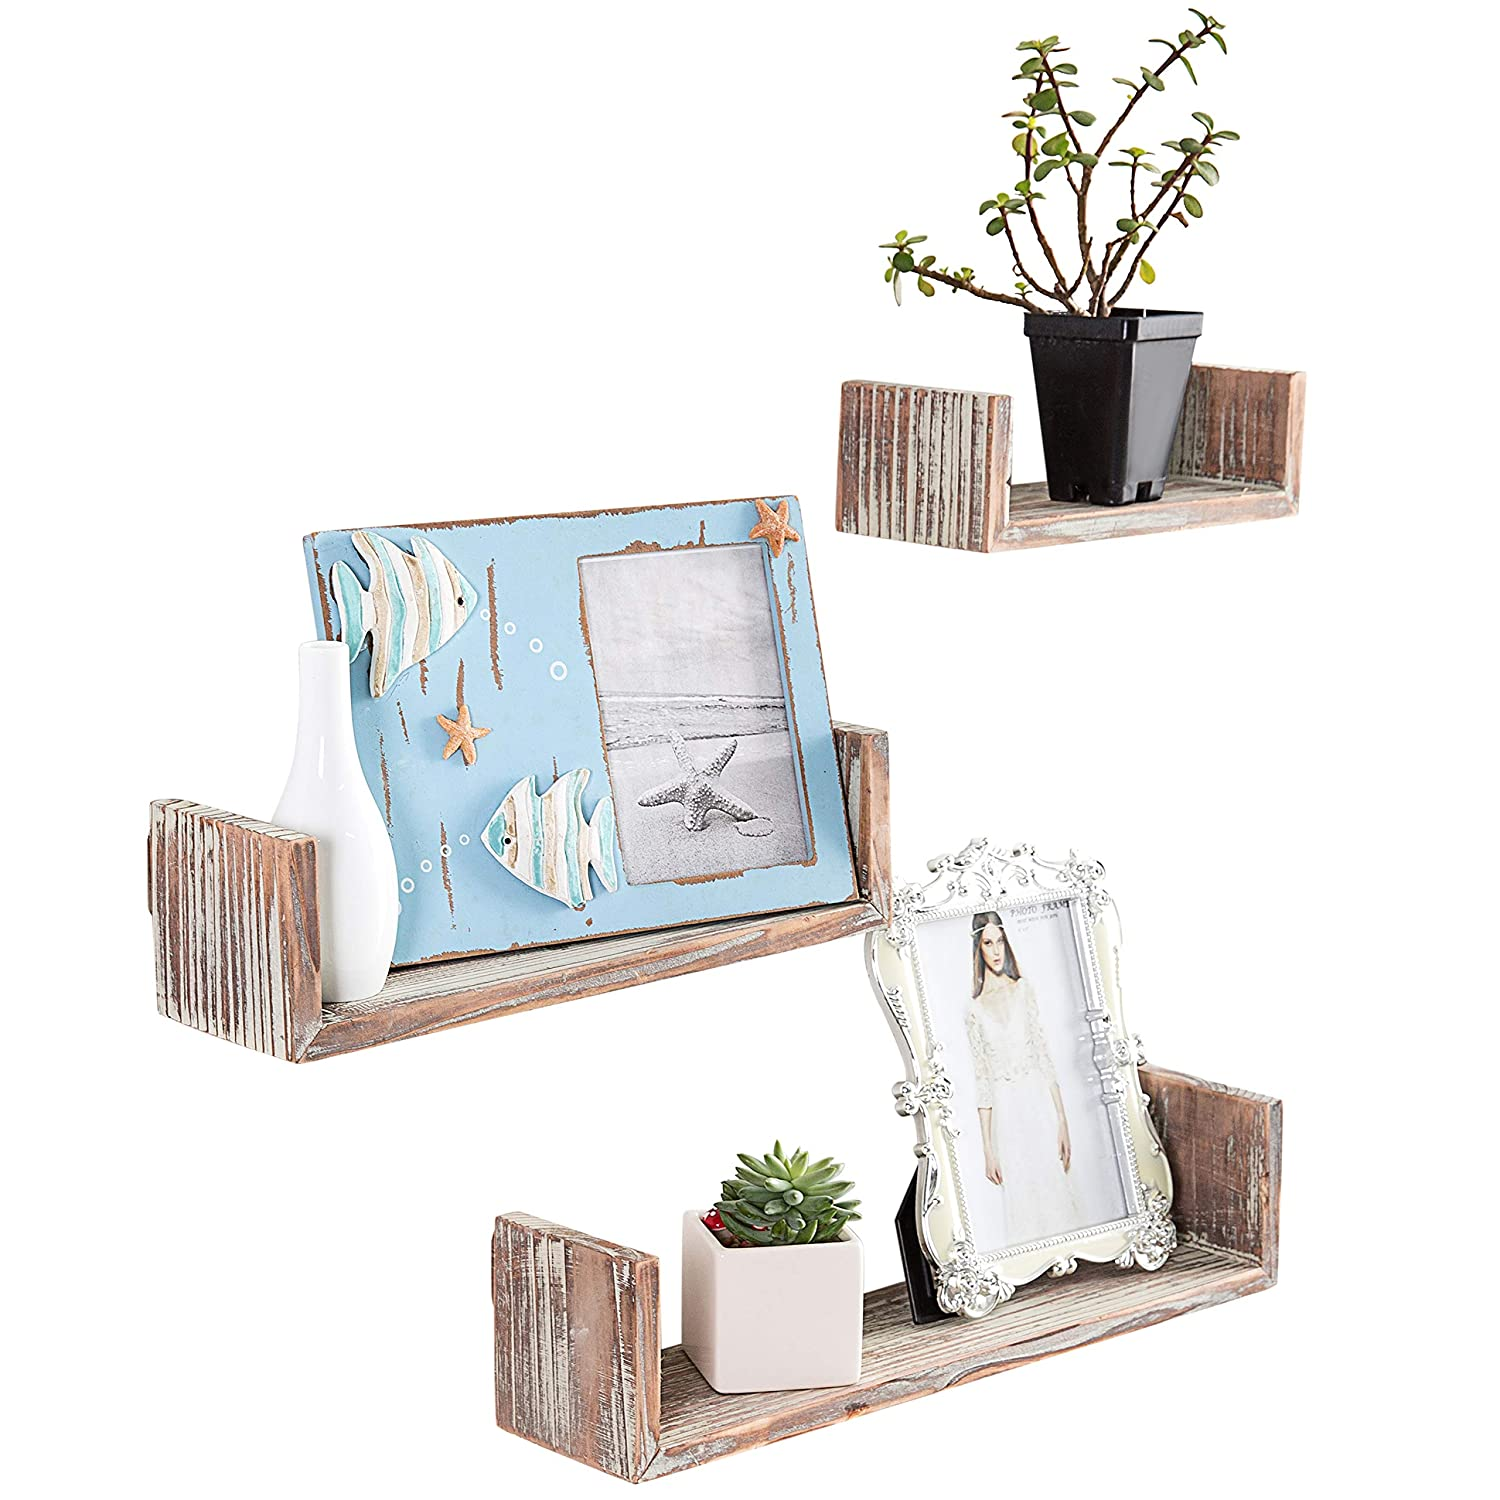 MyGift Wall Mounted Torched Wood U-Shaped Floating Shelves, Set of 3, Dark Brown